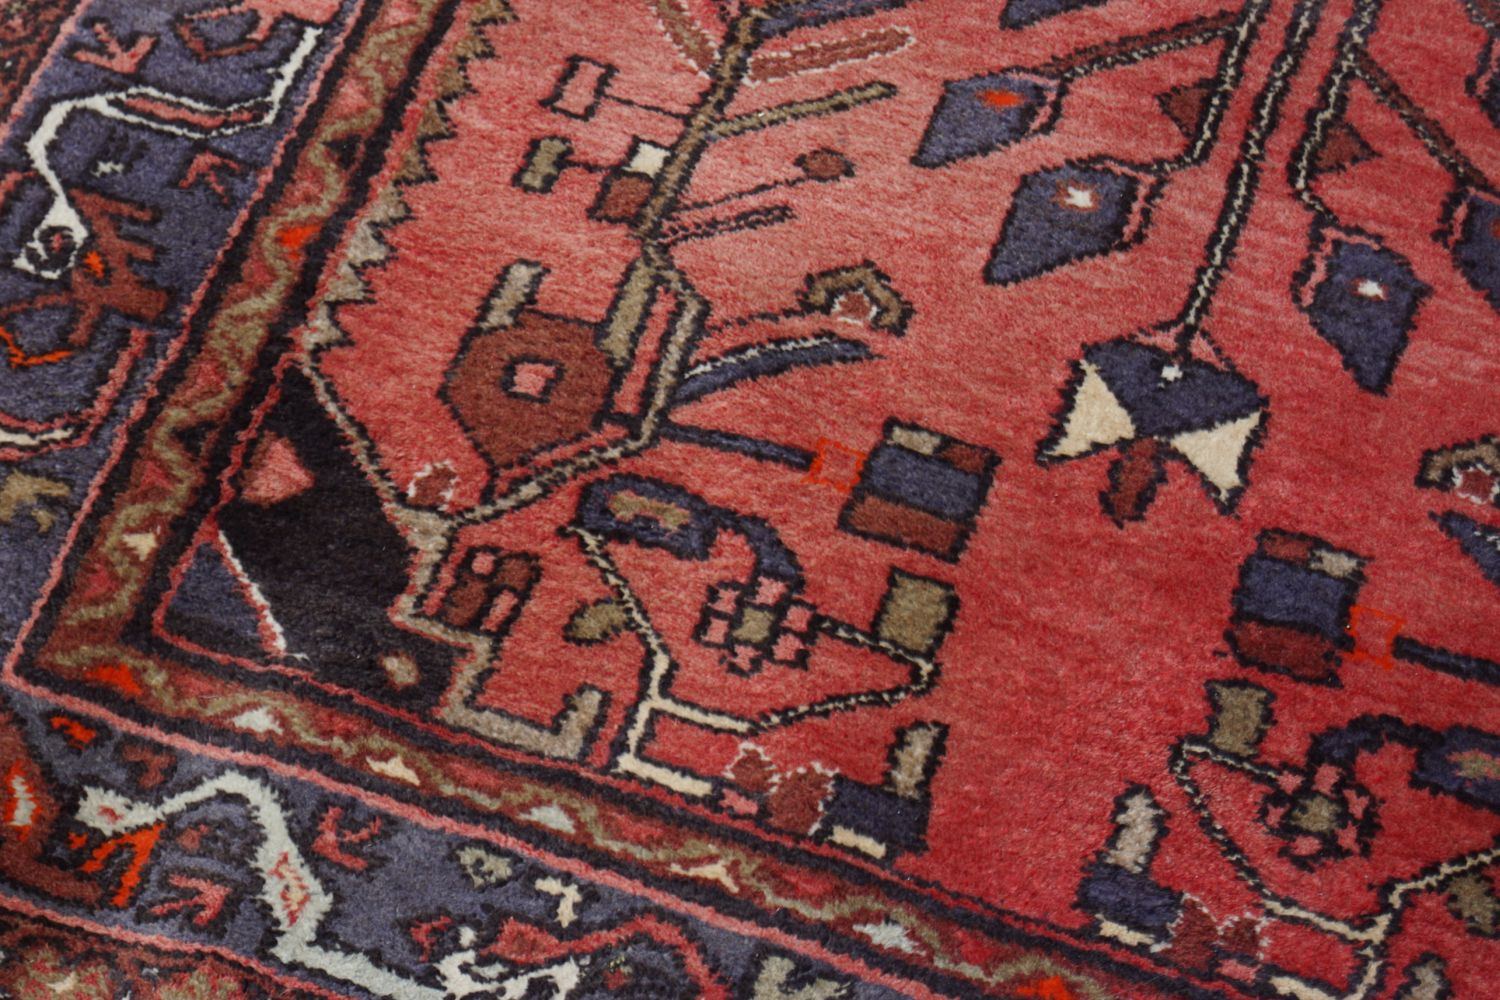 LARGE PERSIAN RUG - Image 4 of 5